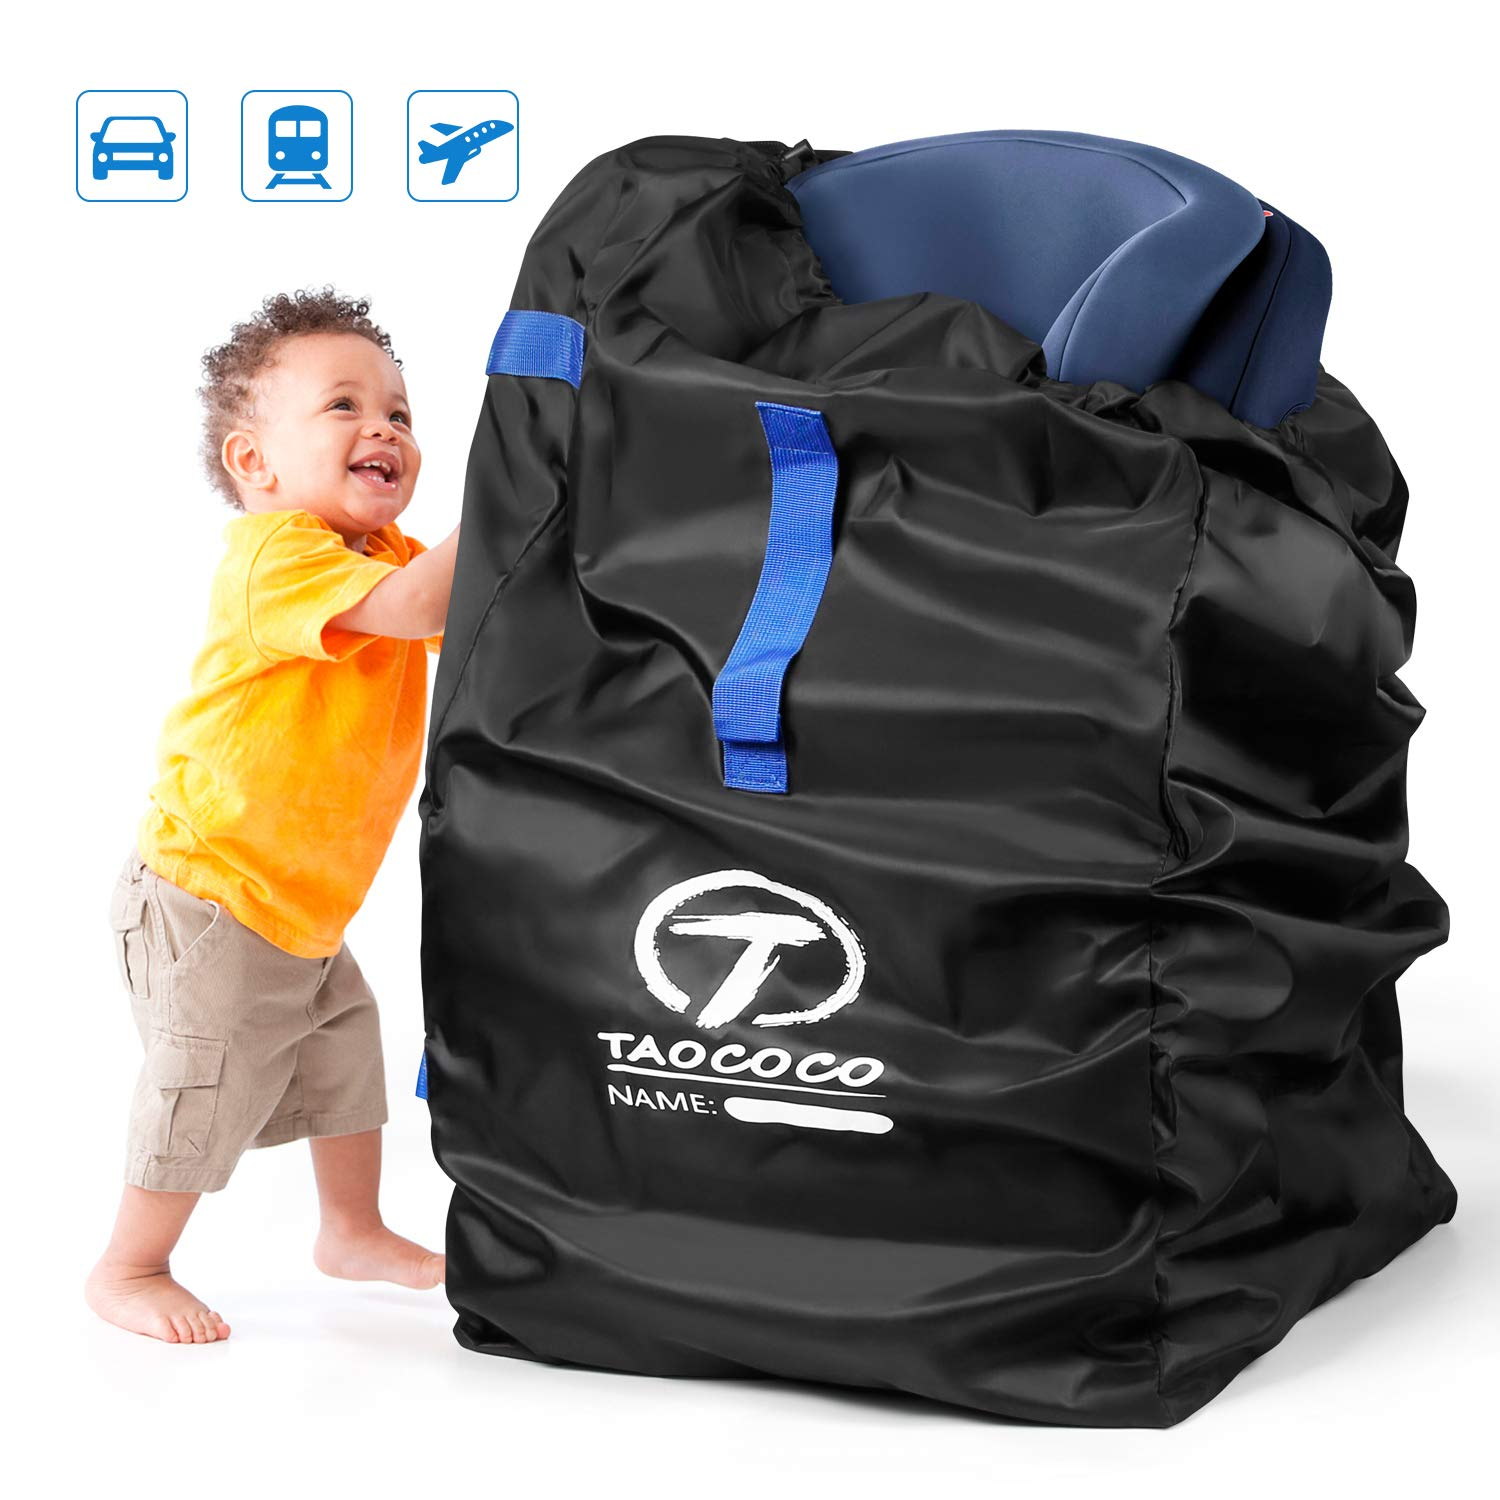 TAOCOCO Car Seat Travel Bag, Gate Check Bag for Family Travel with Baby, Airline Easy Carry Carseat Bag Stroller Car Seat Travel Bag by TAOCOCO